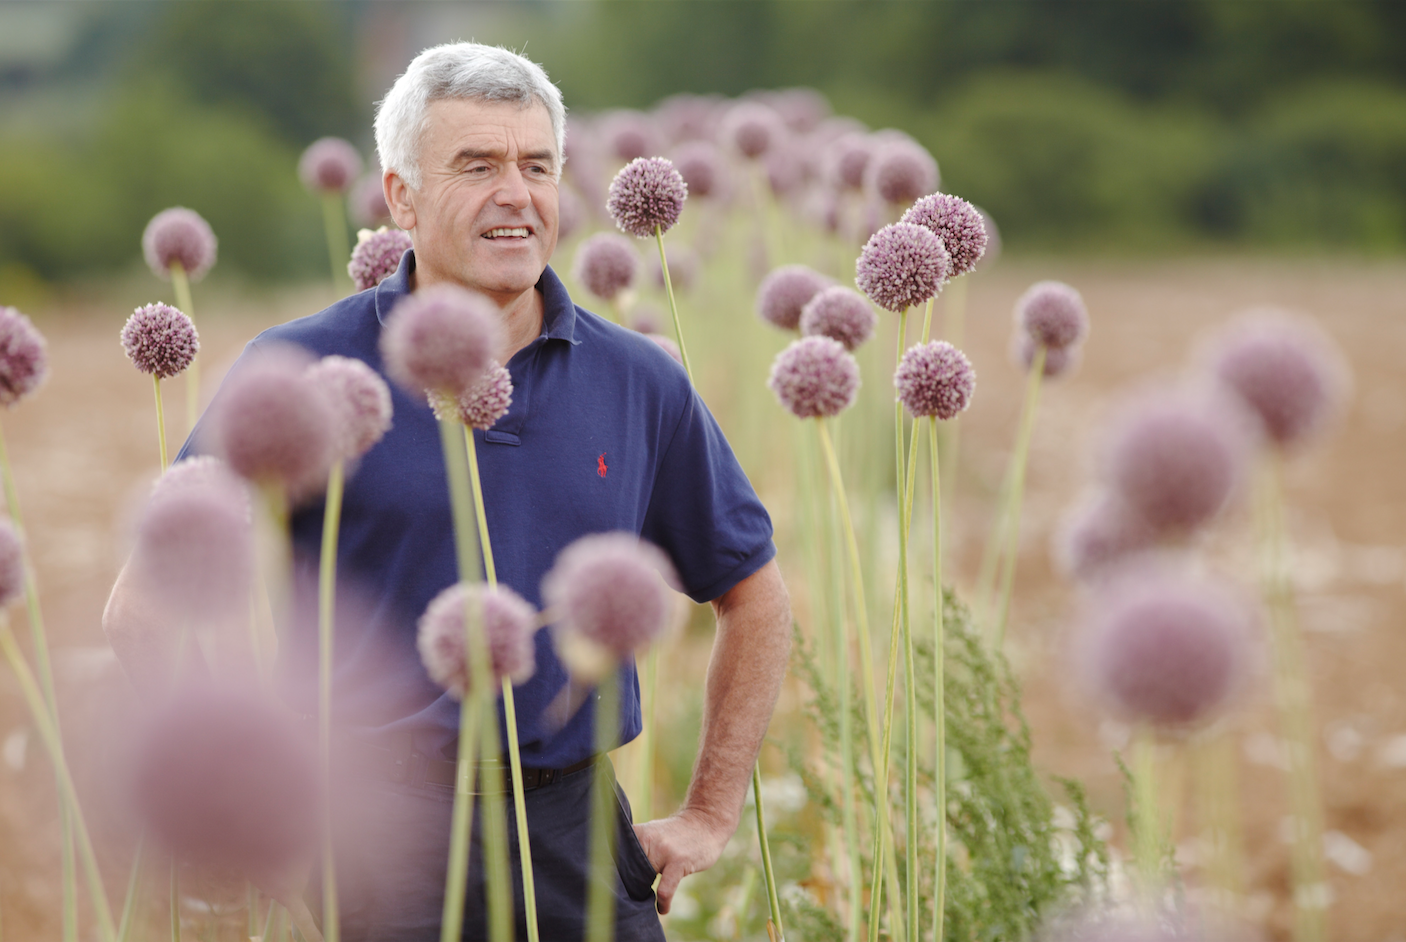 Colin Boswell, The Garlic Farm farmer and founder